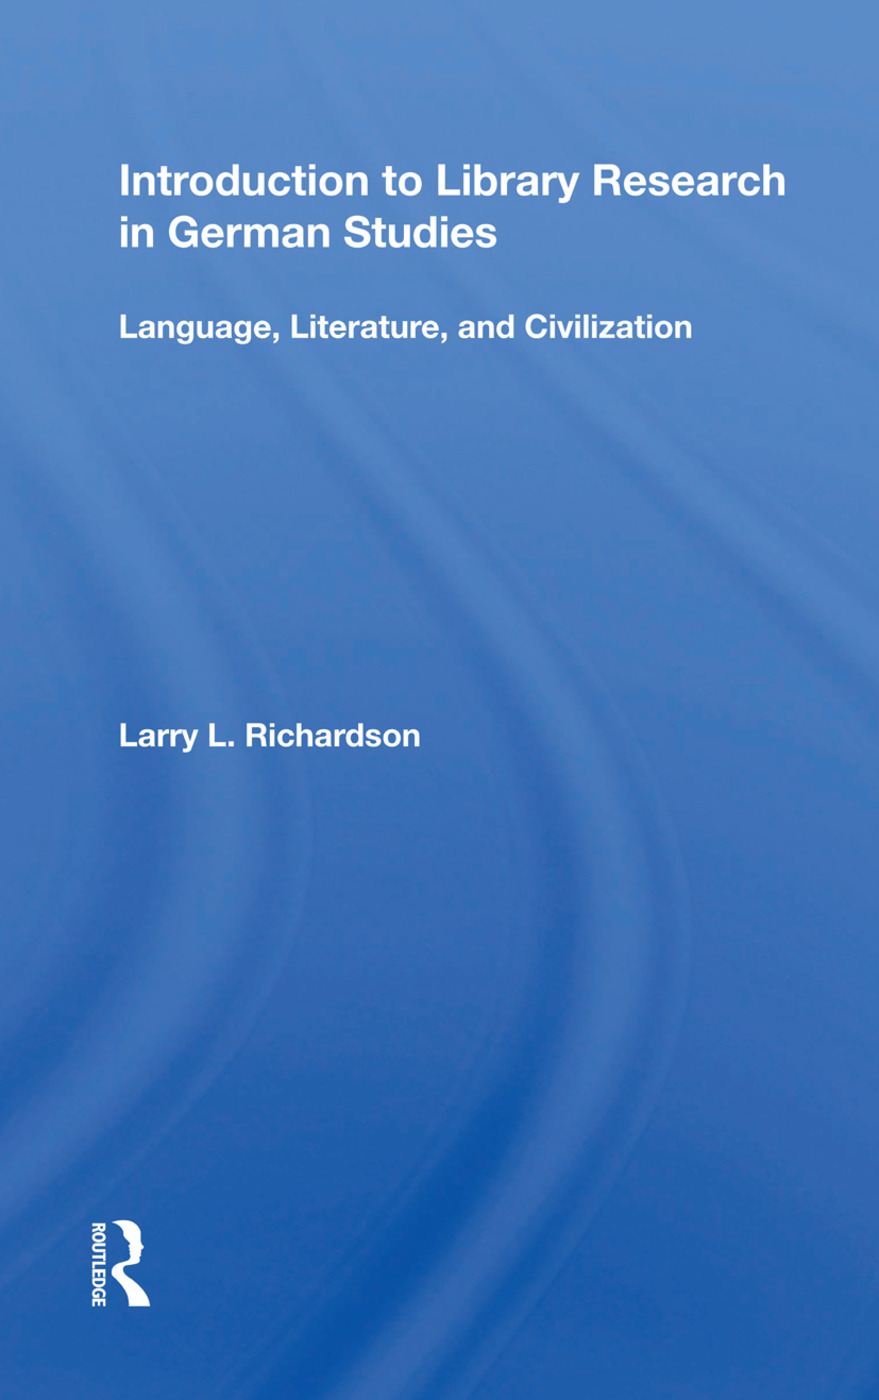 Introduction to Library Research in German Studies: